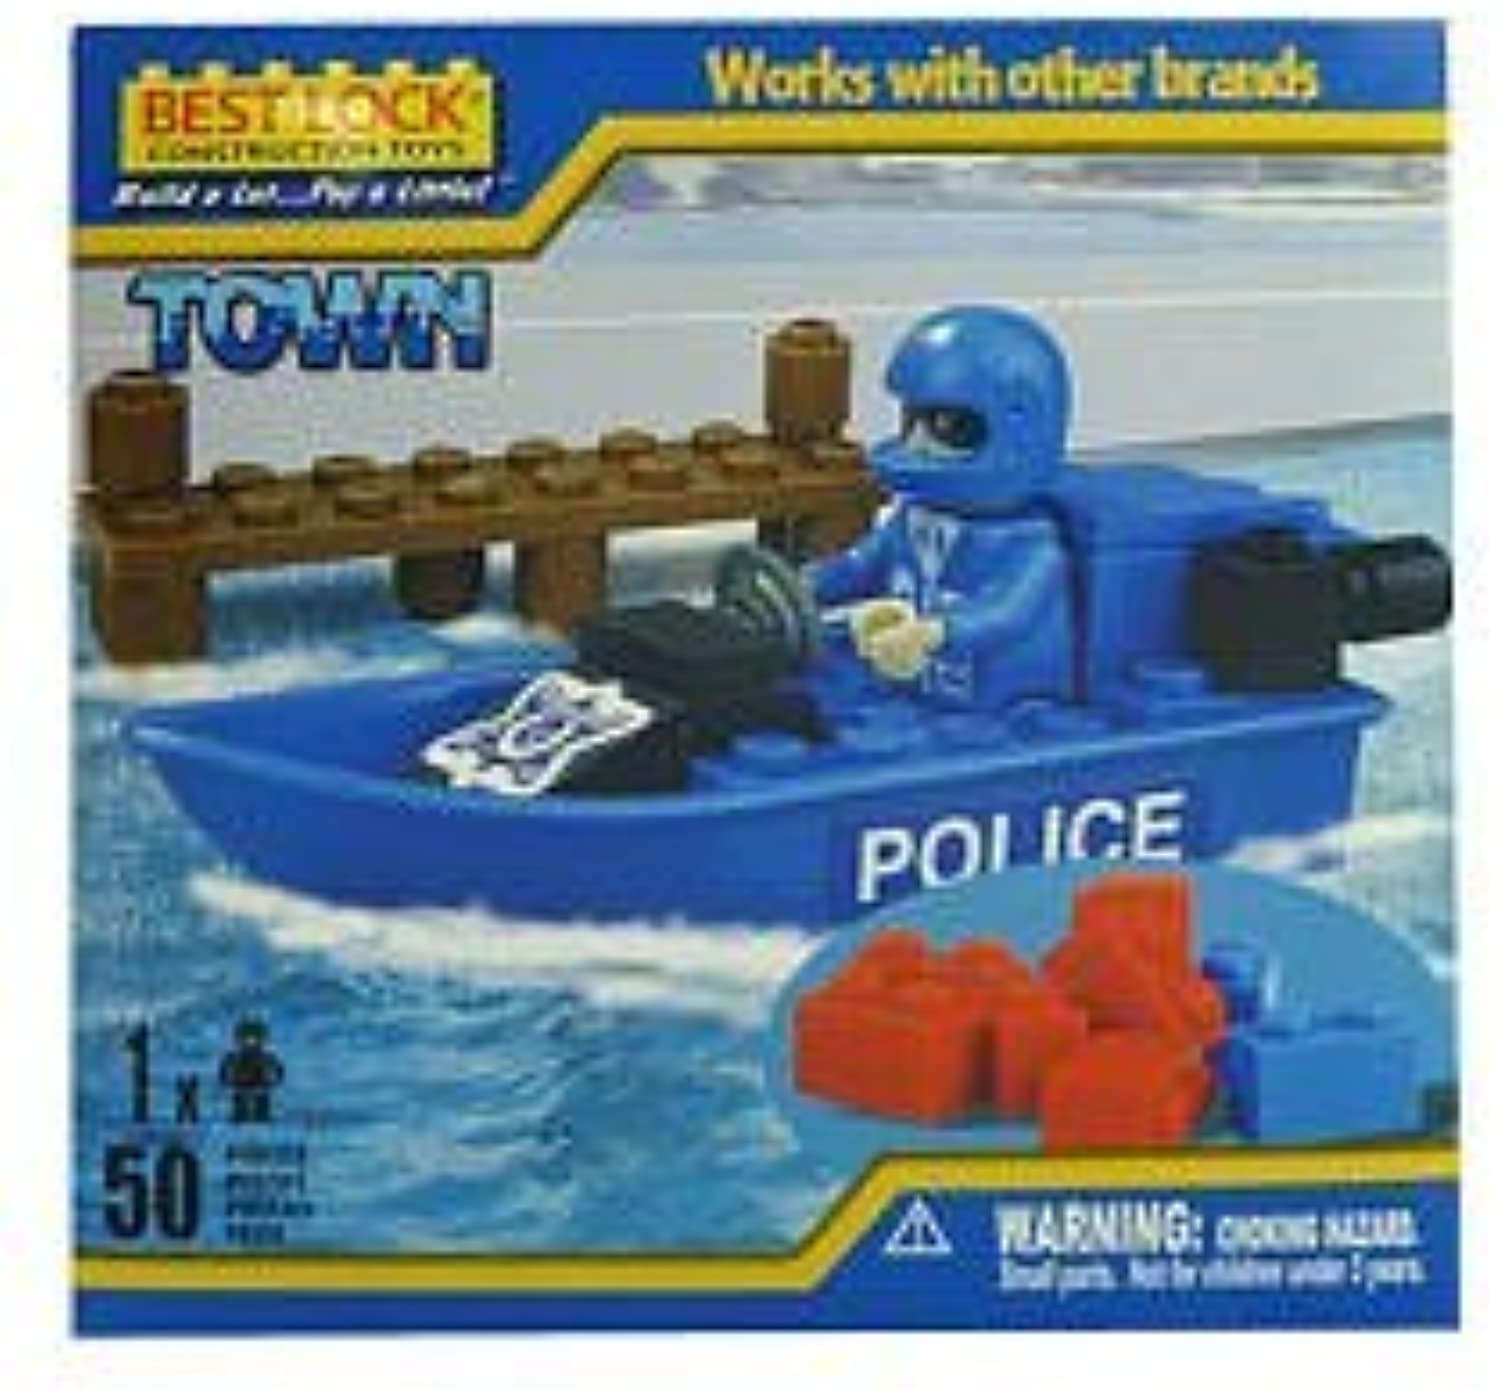 Best-Lock Construction Policeman and Boat 50 Pieces by Best-Lock